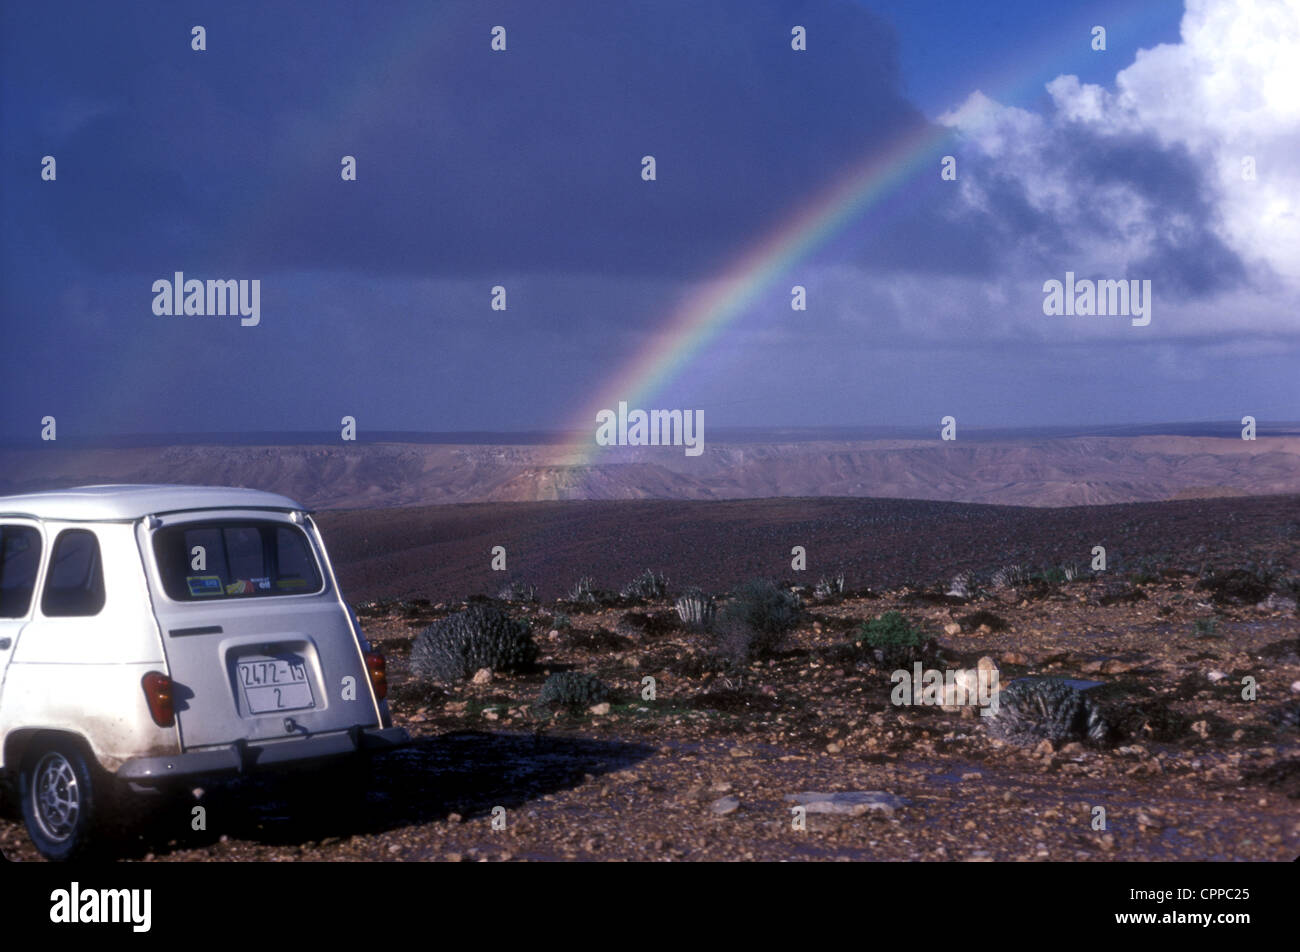 Renault 4 in the Western Sahara of Morocco with euphorbia and a rainbow - Stock Image